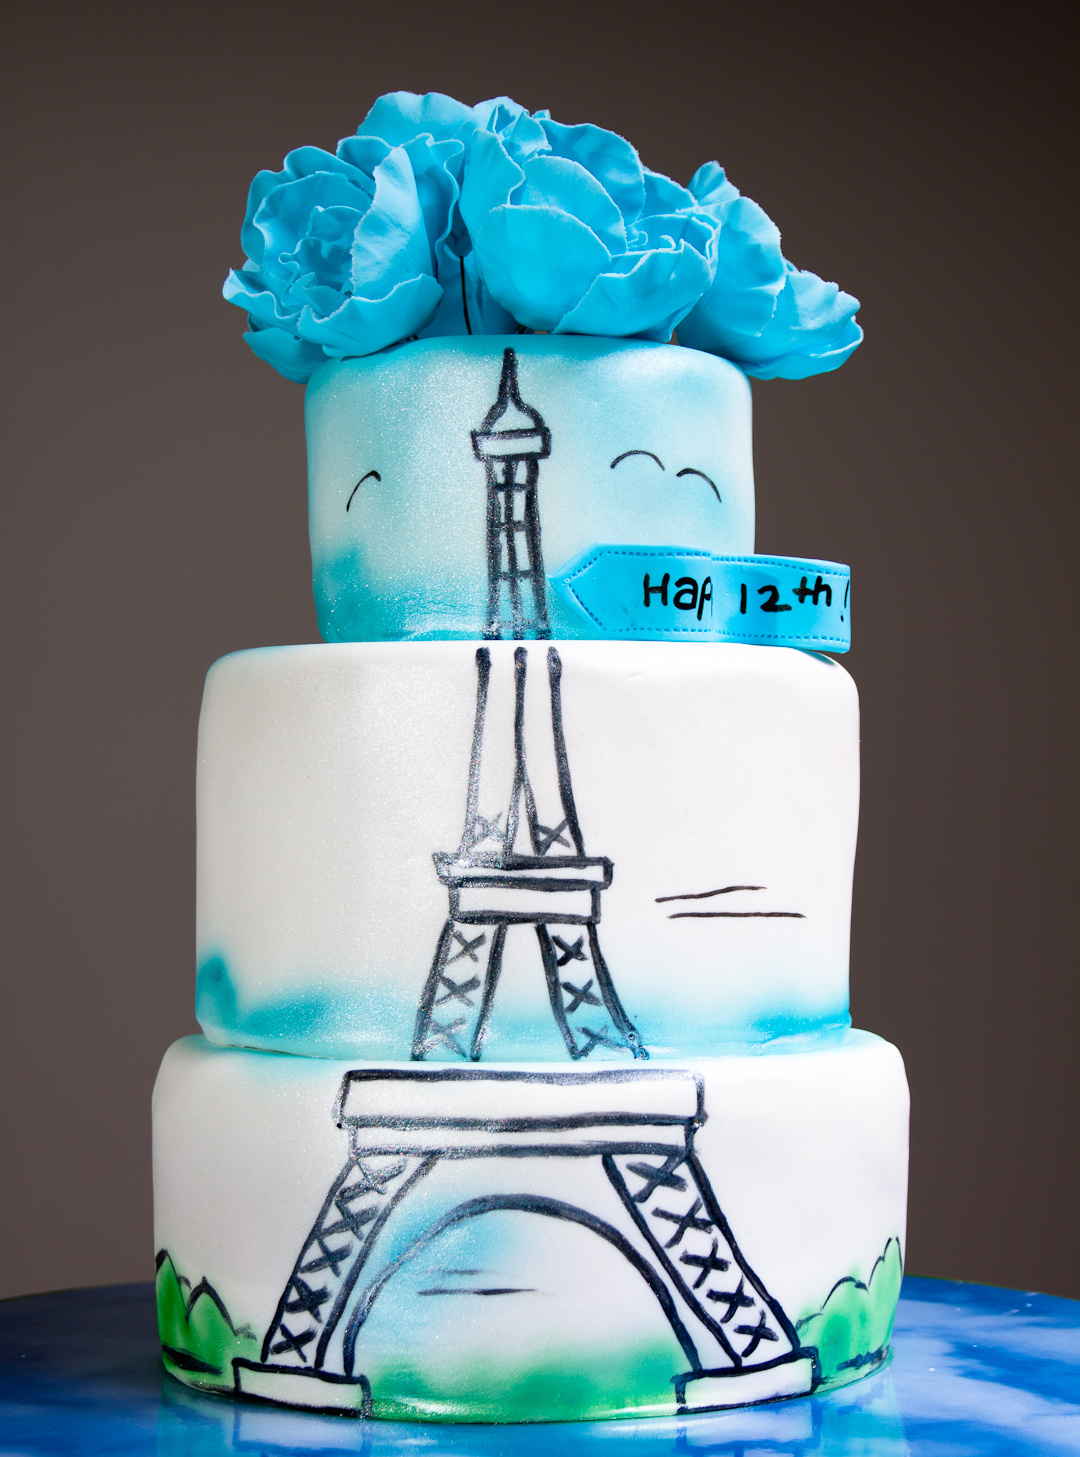 Cake Images With Chocolate Eiffel Tower On Top